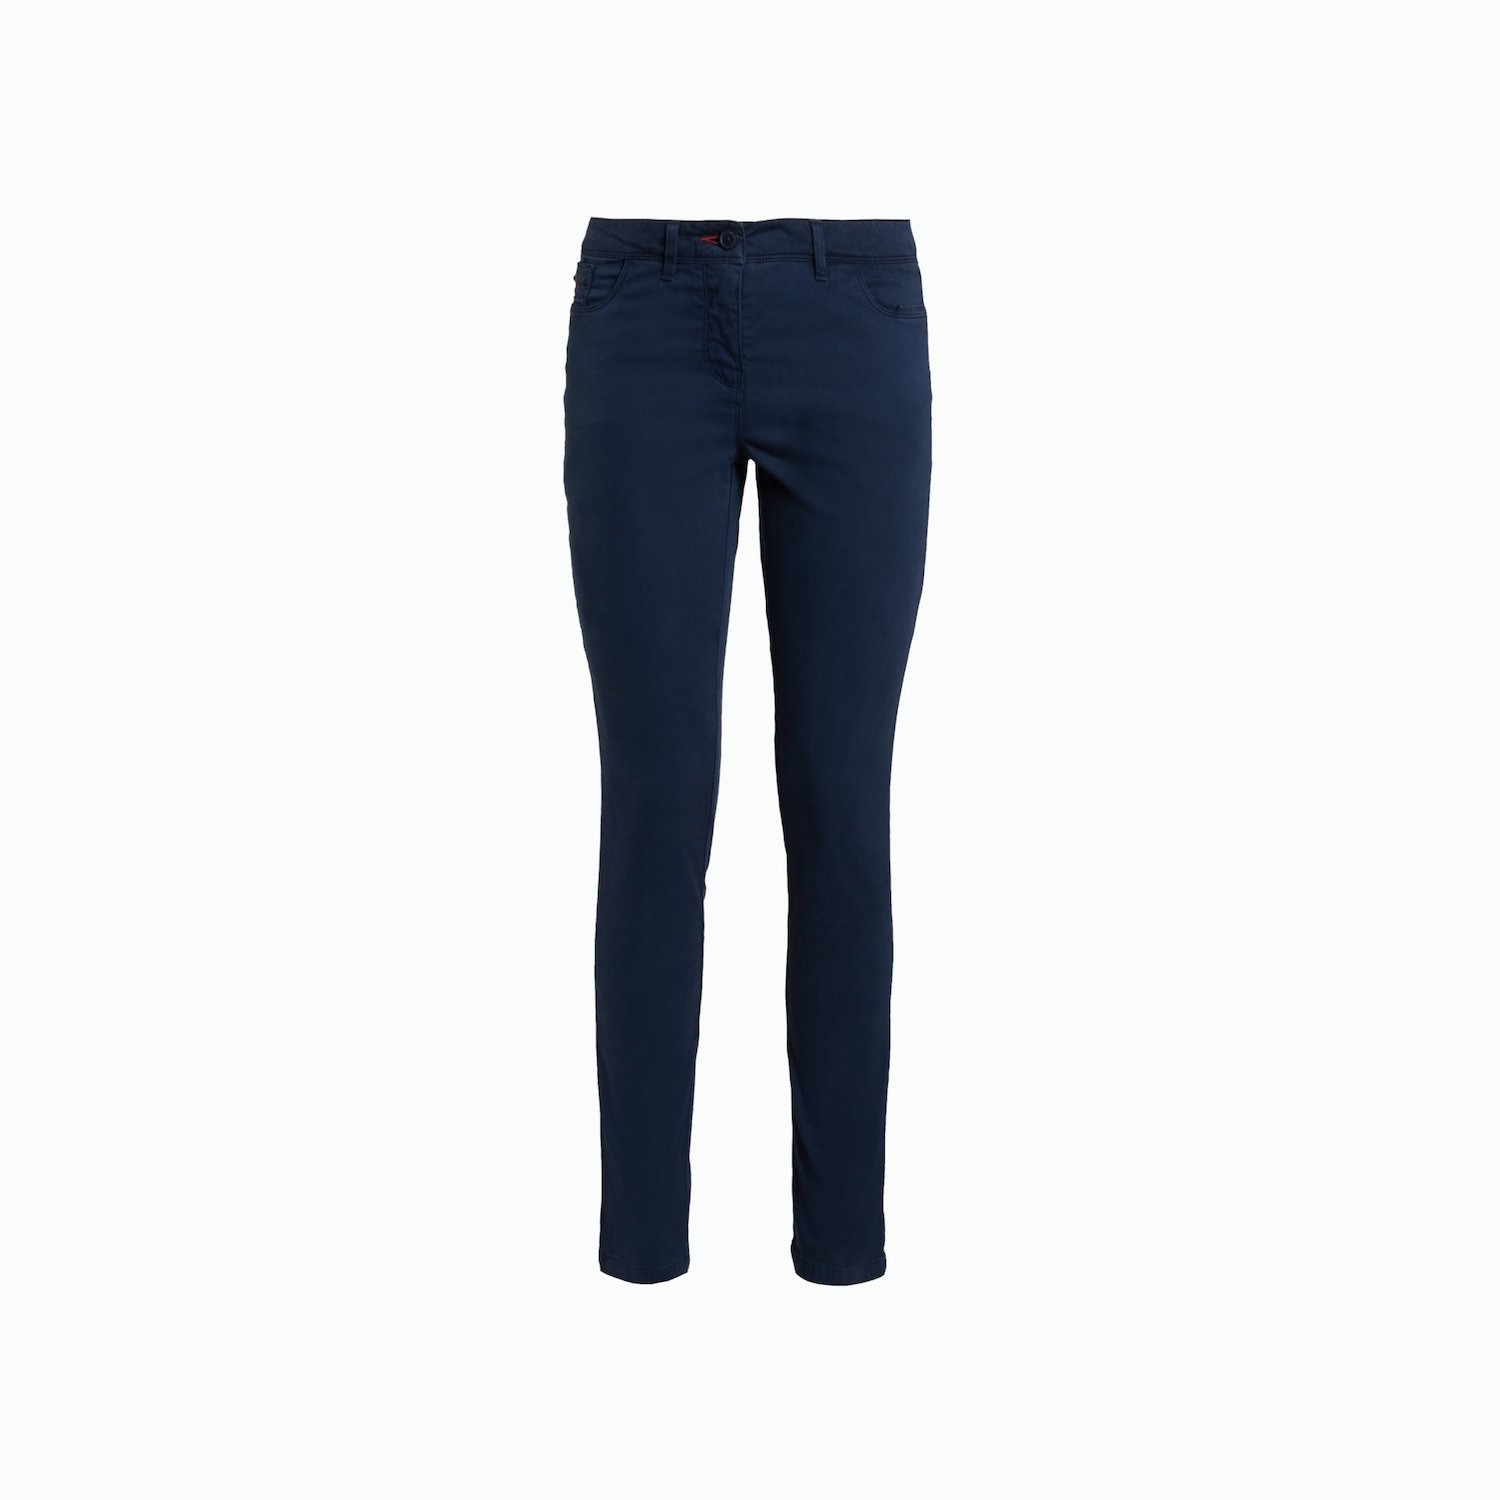 B38 Trousers - Sea Blue